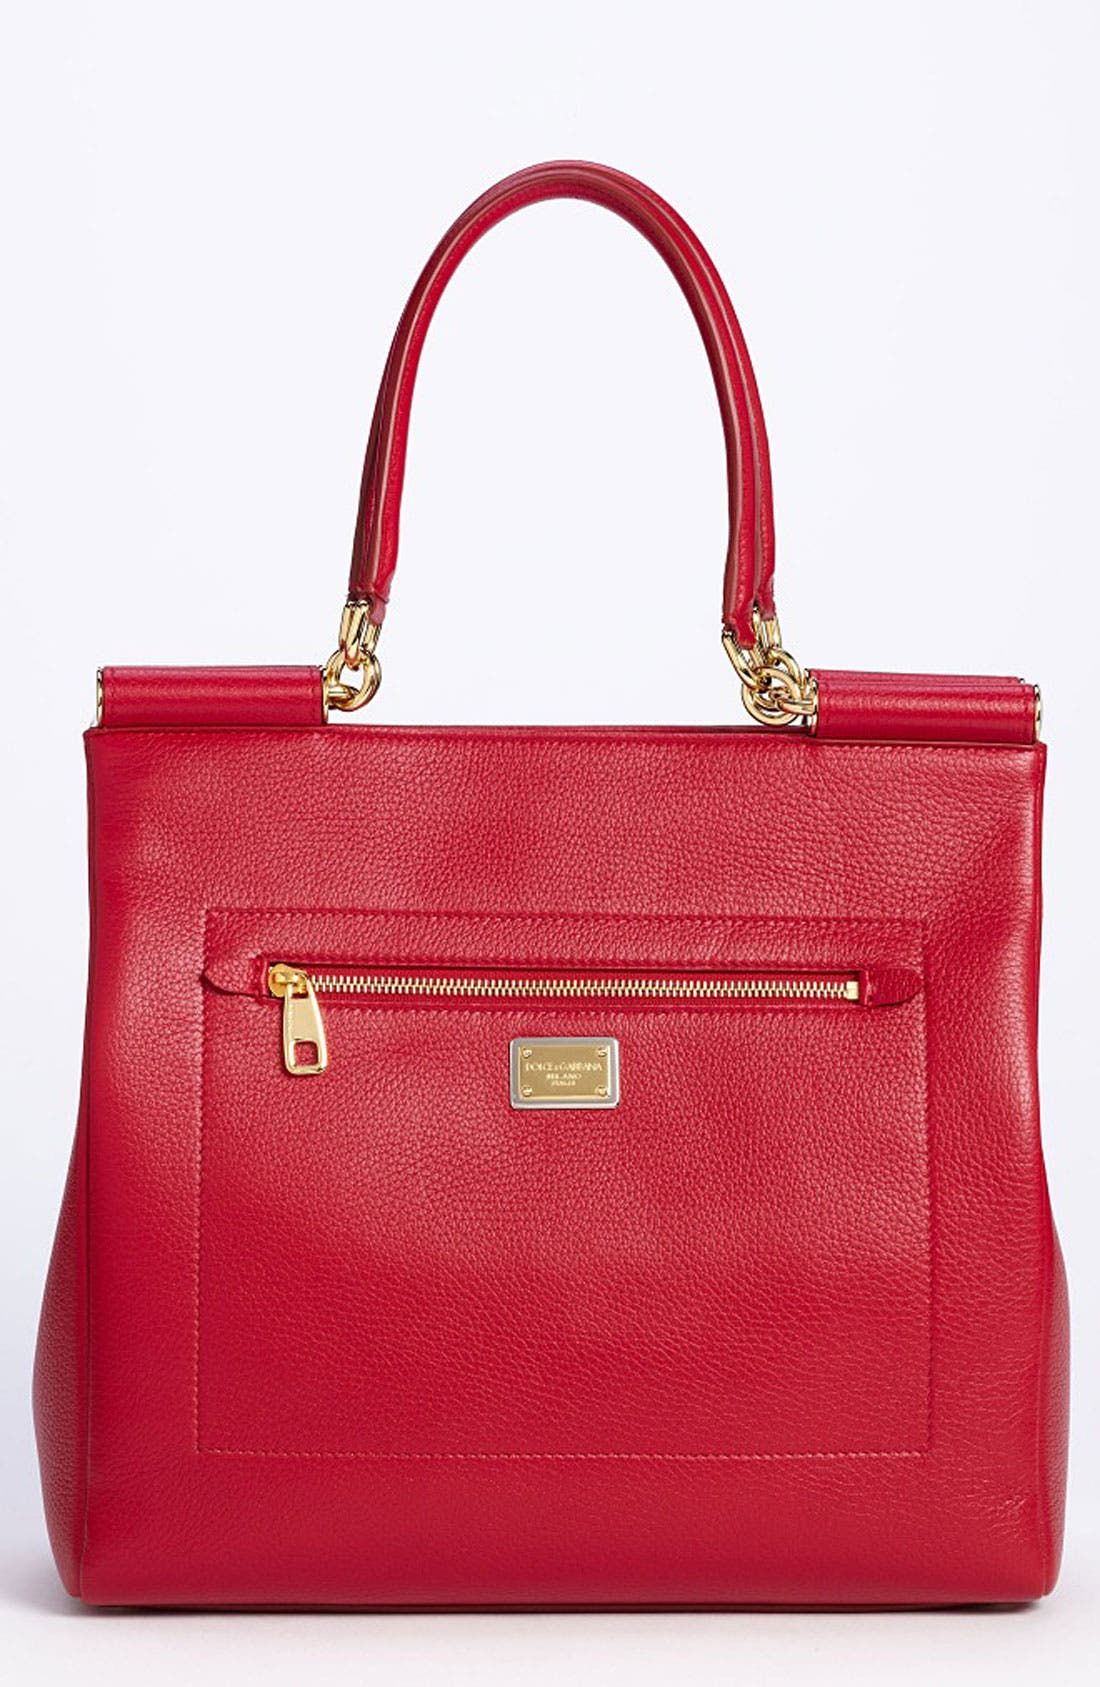 Main Image - Dolce&Gabbana 'Miss Sicily' Leather Shopper